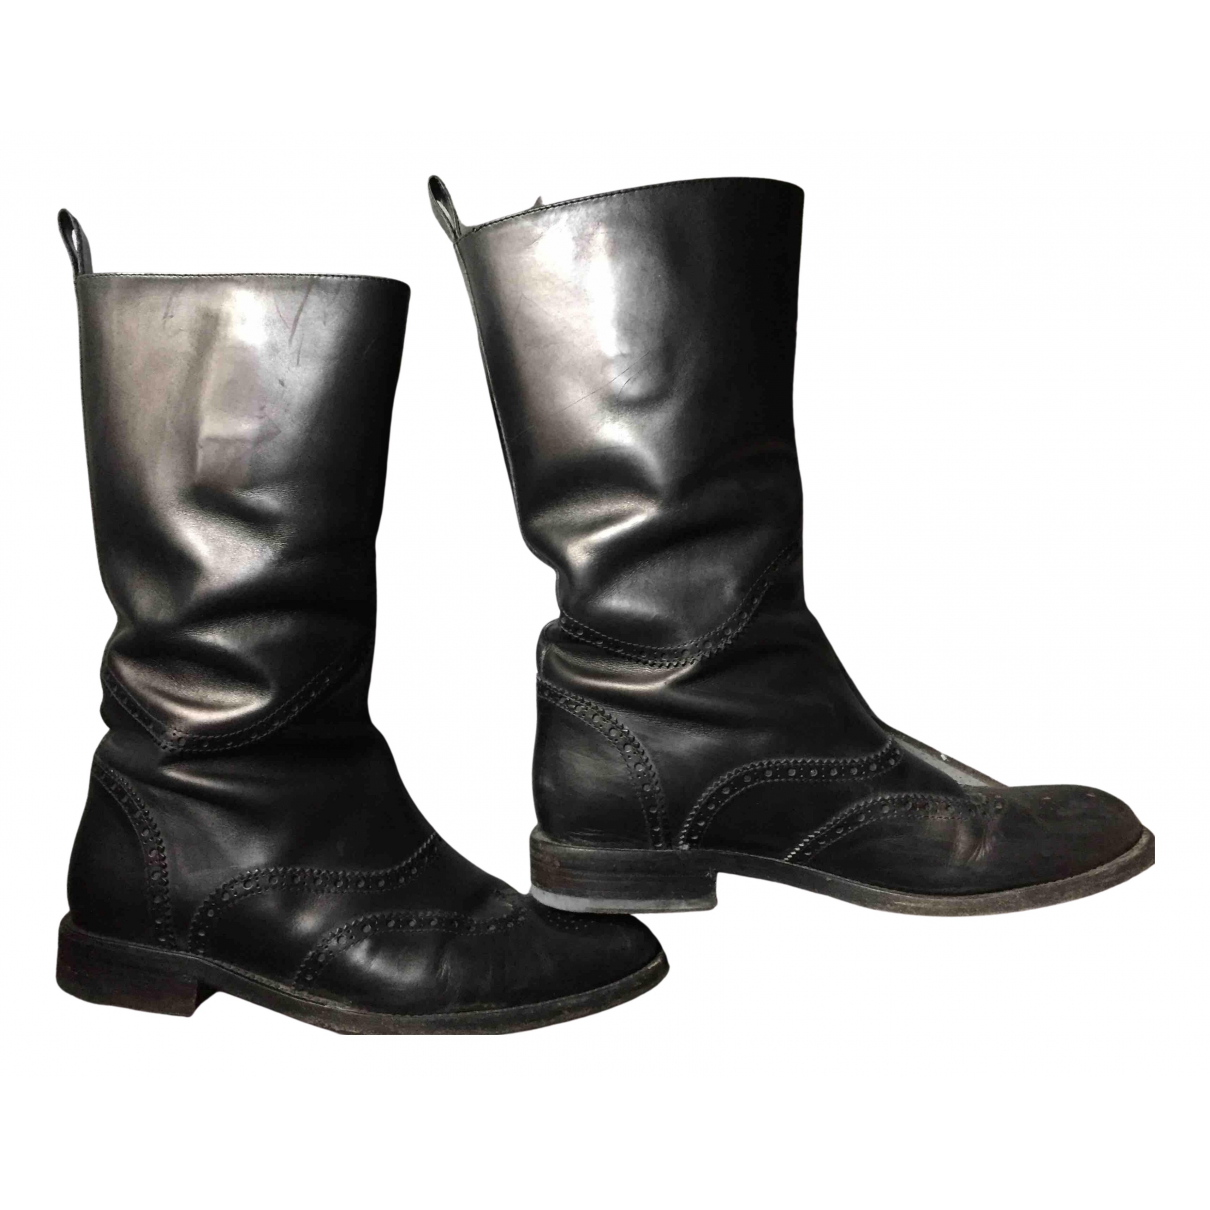 Gucci N Black Leather Boots for Women 38.5 EU